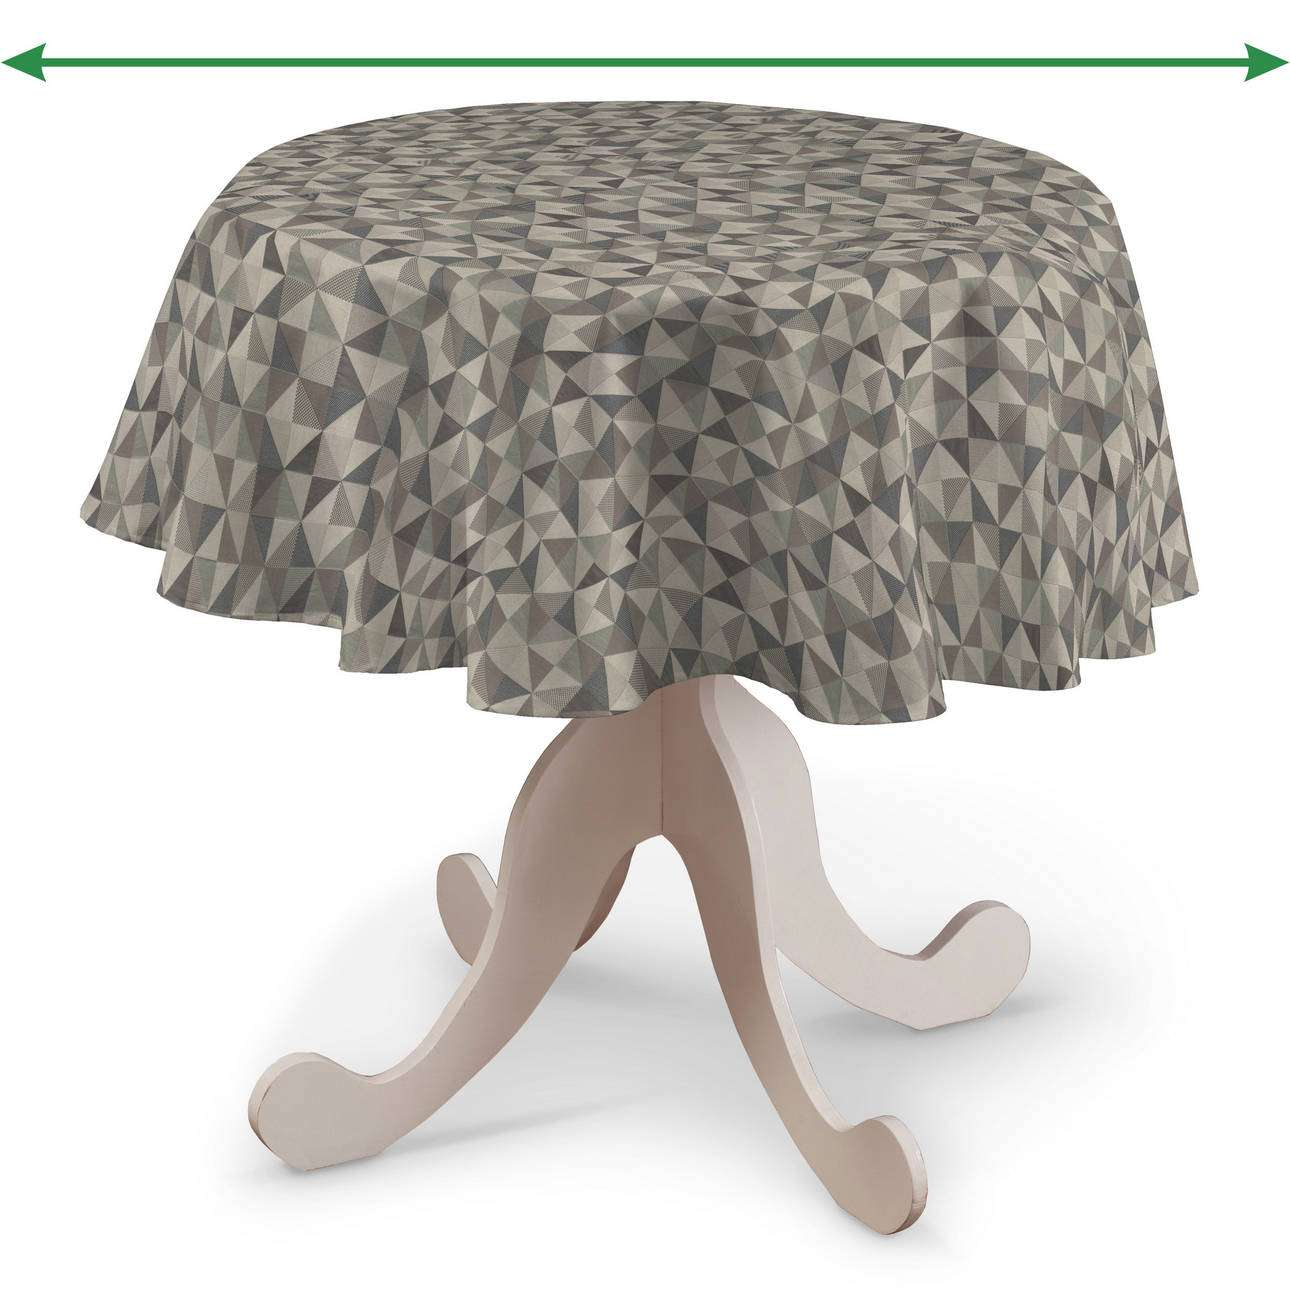 Round tablecloth in collection Retro Glam, fabric: 142-84